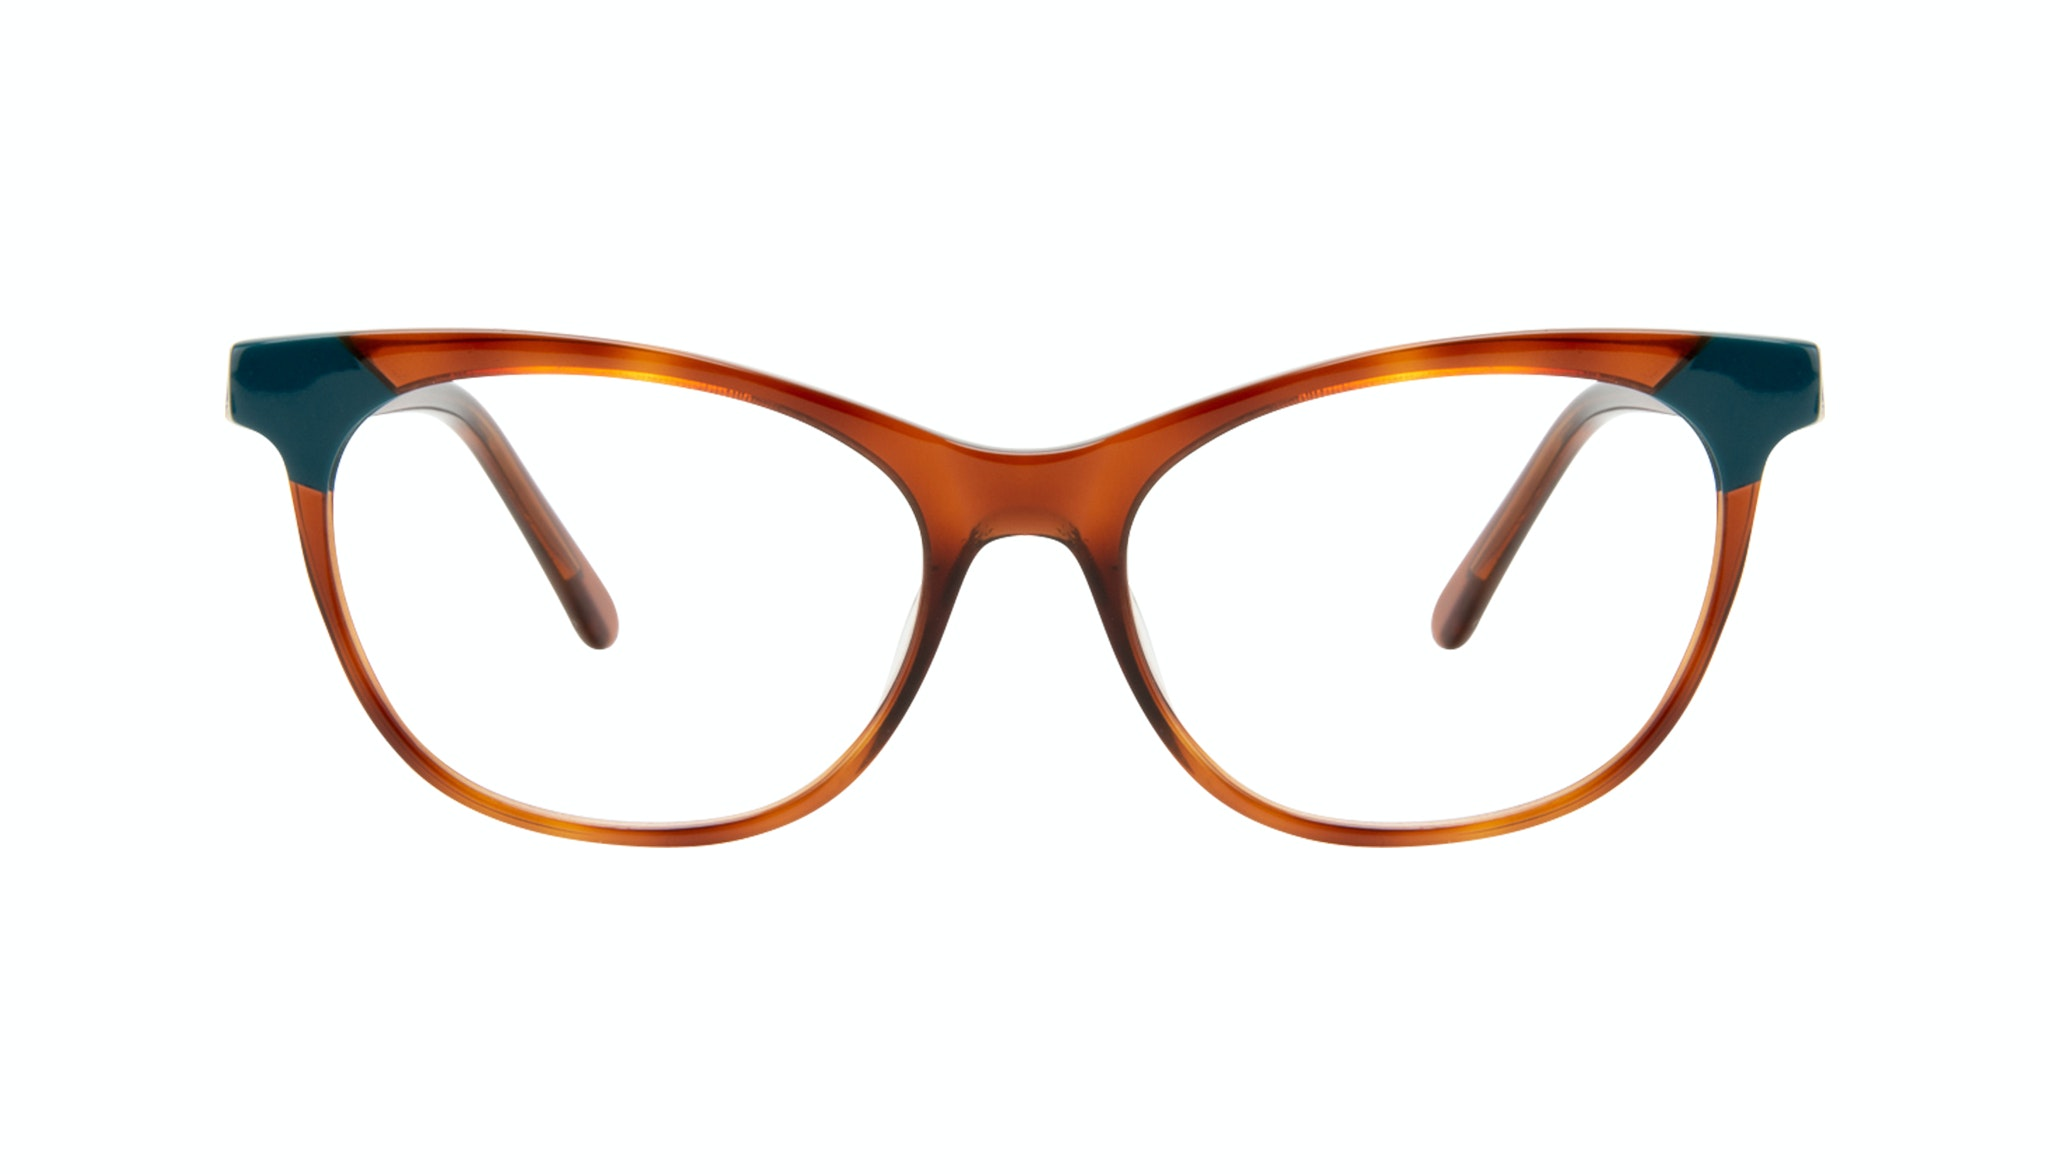 Affordable Fashion Glasses Cat Eye Eyeglasses Women Witty Teal Tort Front